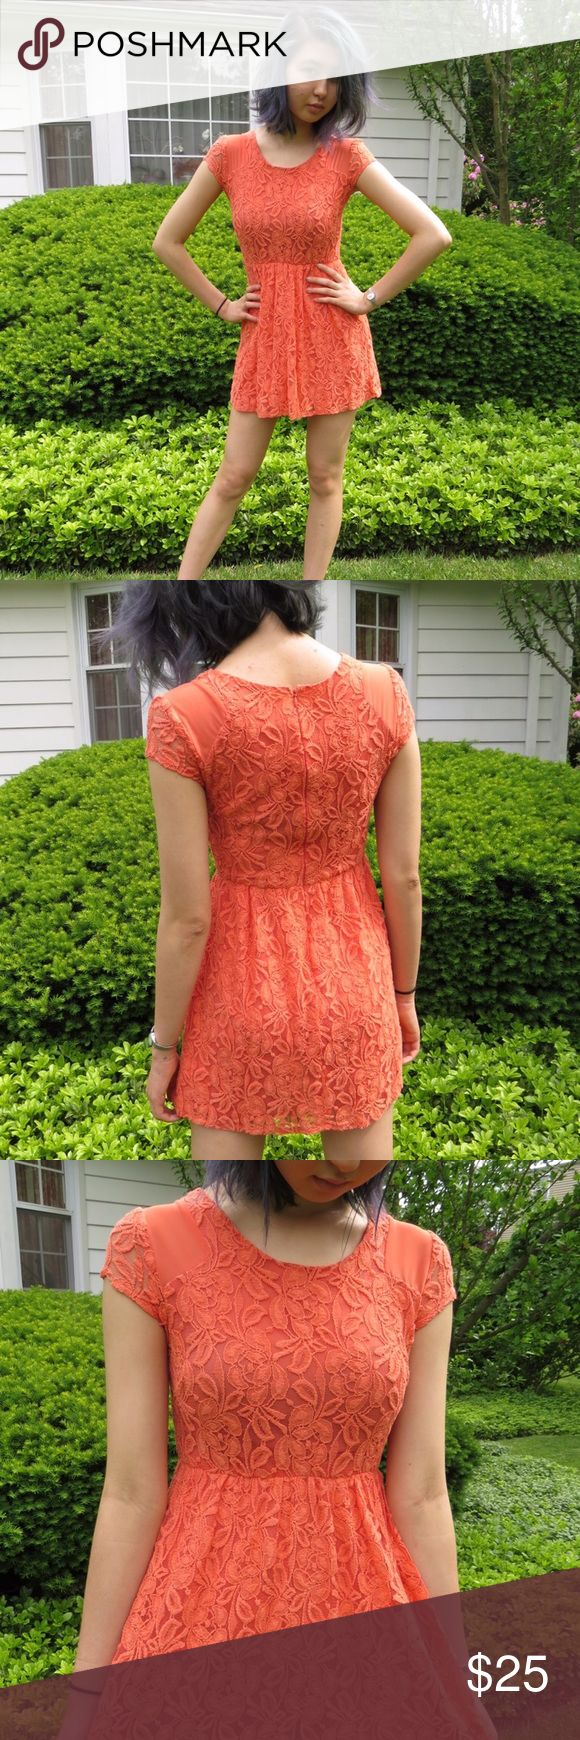 Coincidence & Chance women's lace dress / size xs Urban Outfitters / Coincidence and Chance coral lace dress in size xs (fits size xxs-s). Worn very lightly and in great condition. Urban Outfitters Dresses